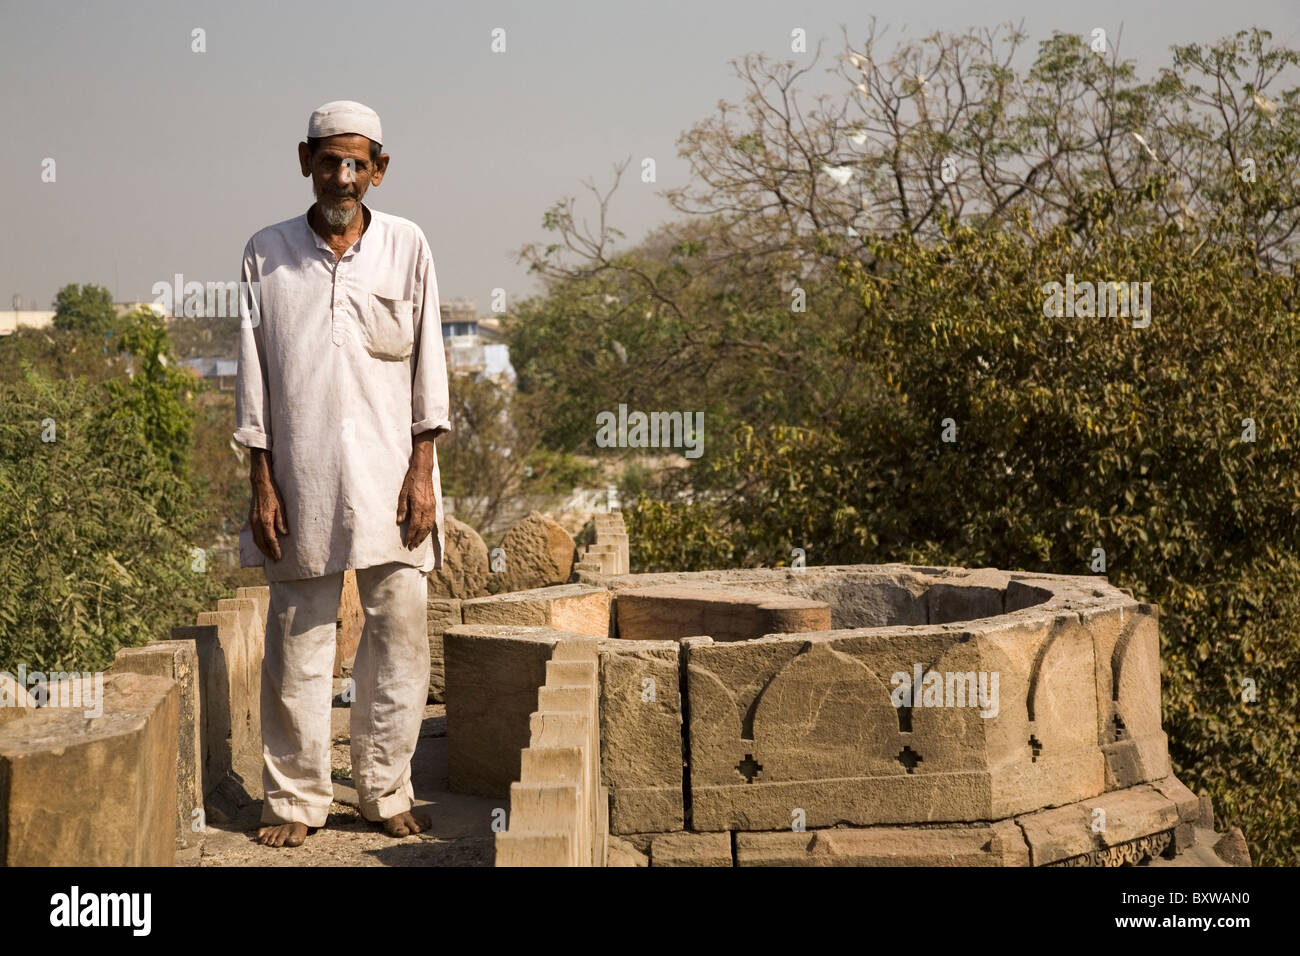 A Muslim man stands on the roof of the Bai Harir Mosque at Ahmedabad, Gujarat, India. - Stock Image